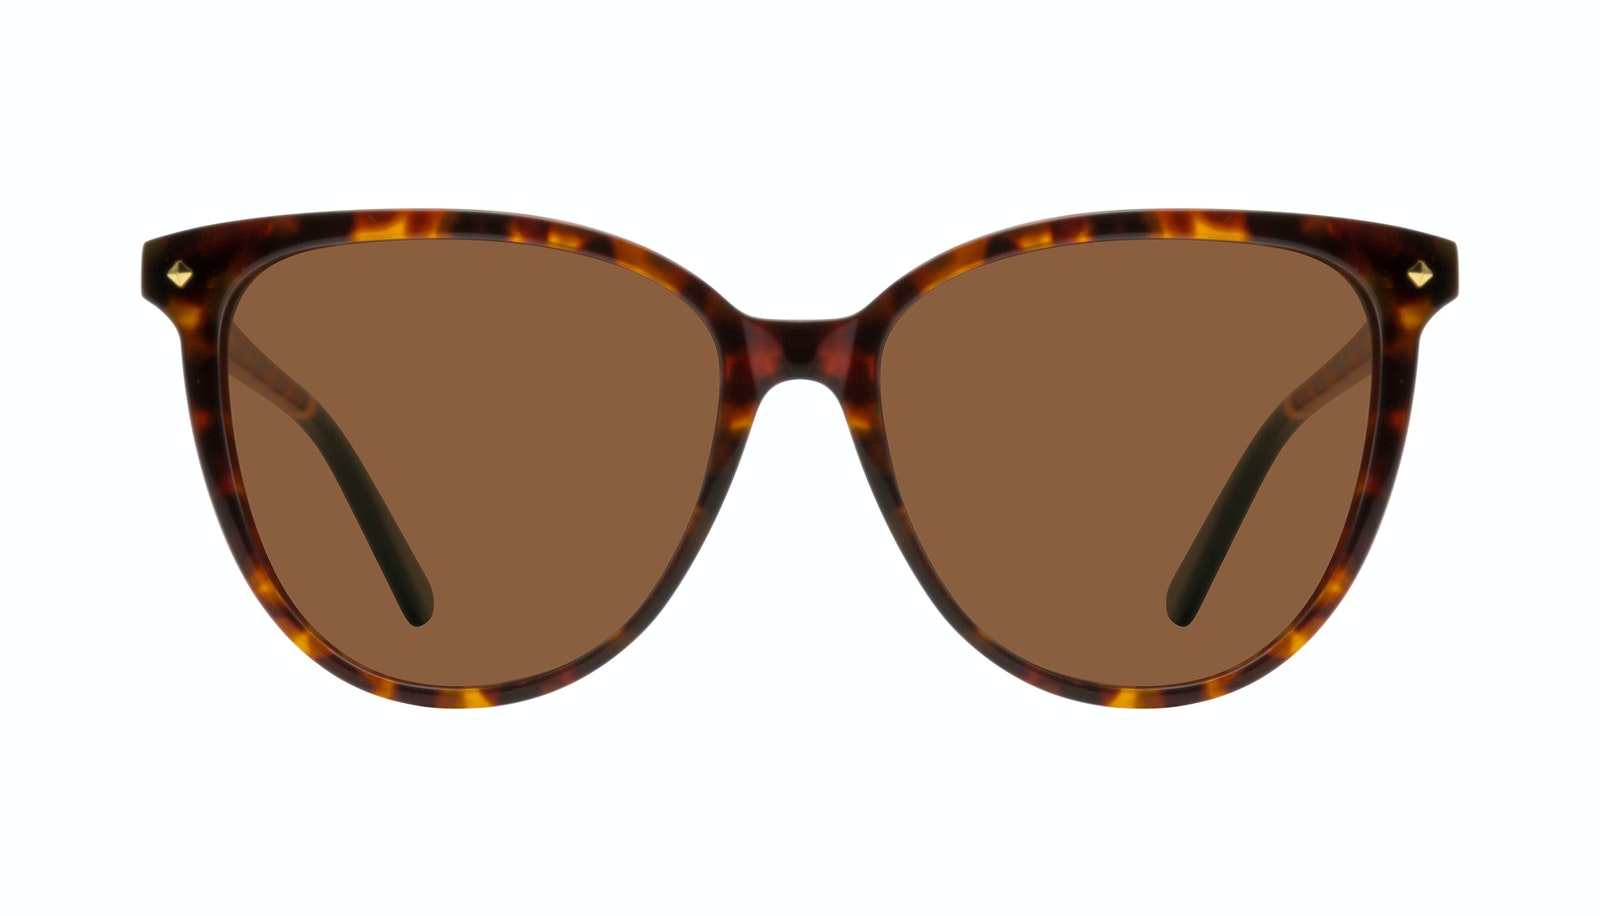 Affordable Fashion Glasses Sunglasses Women Jane Tortoise